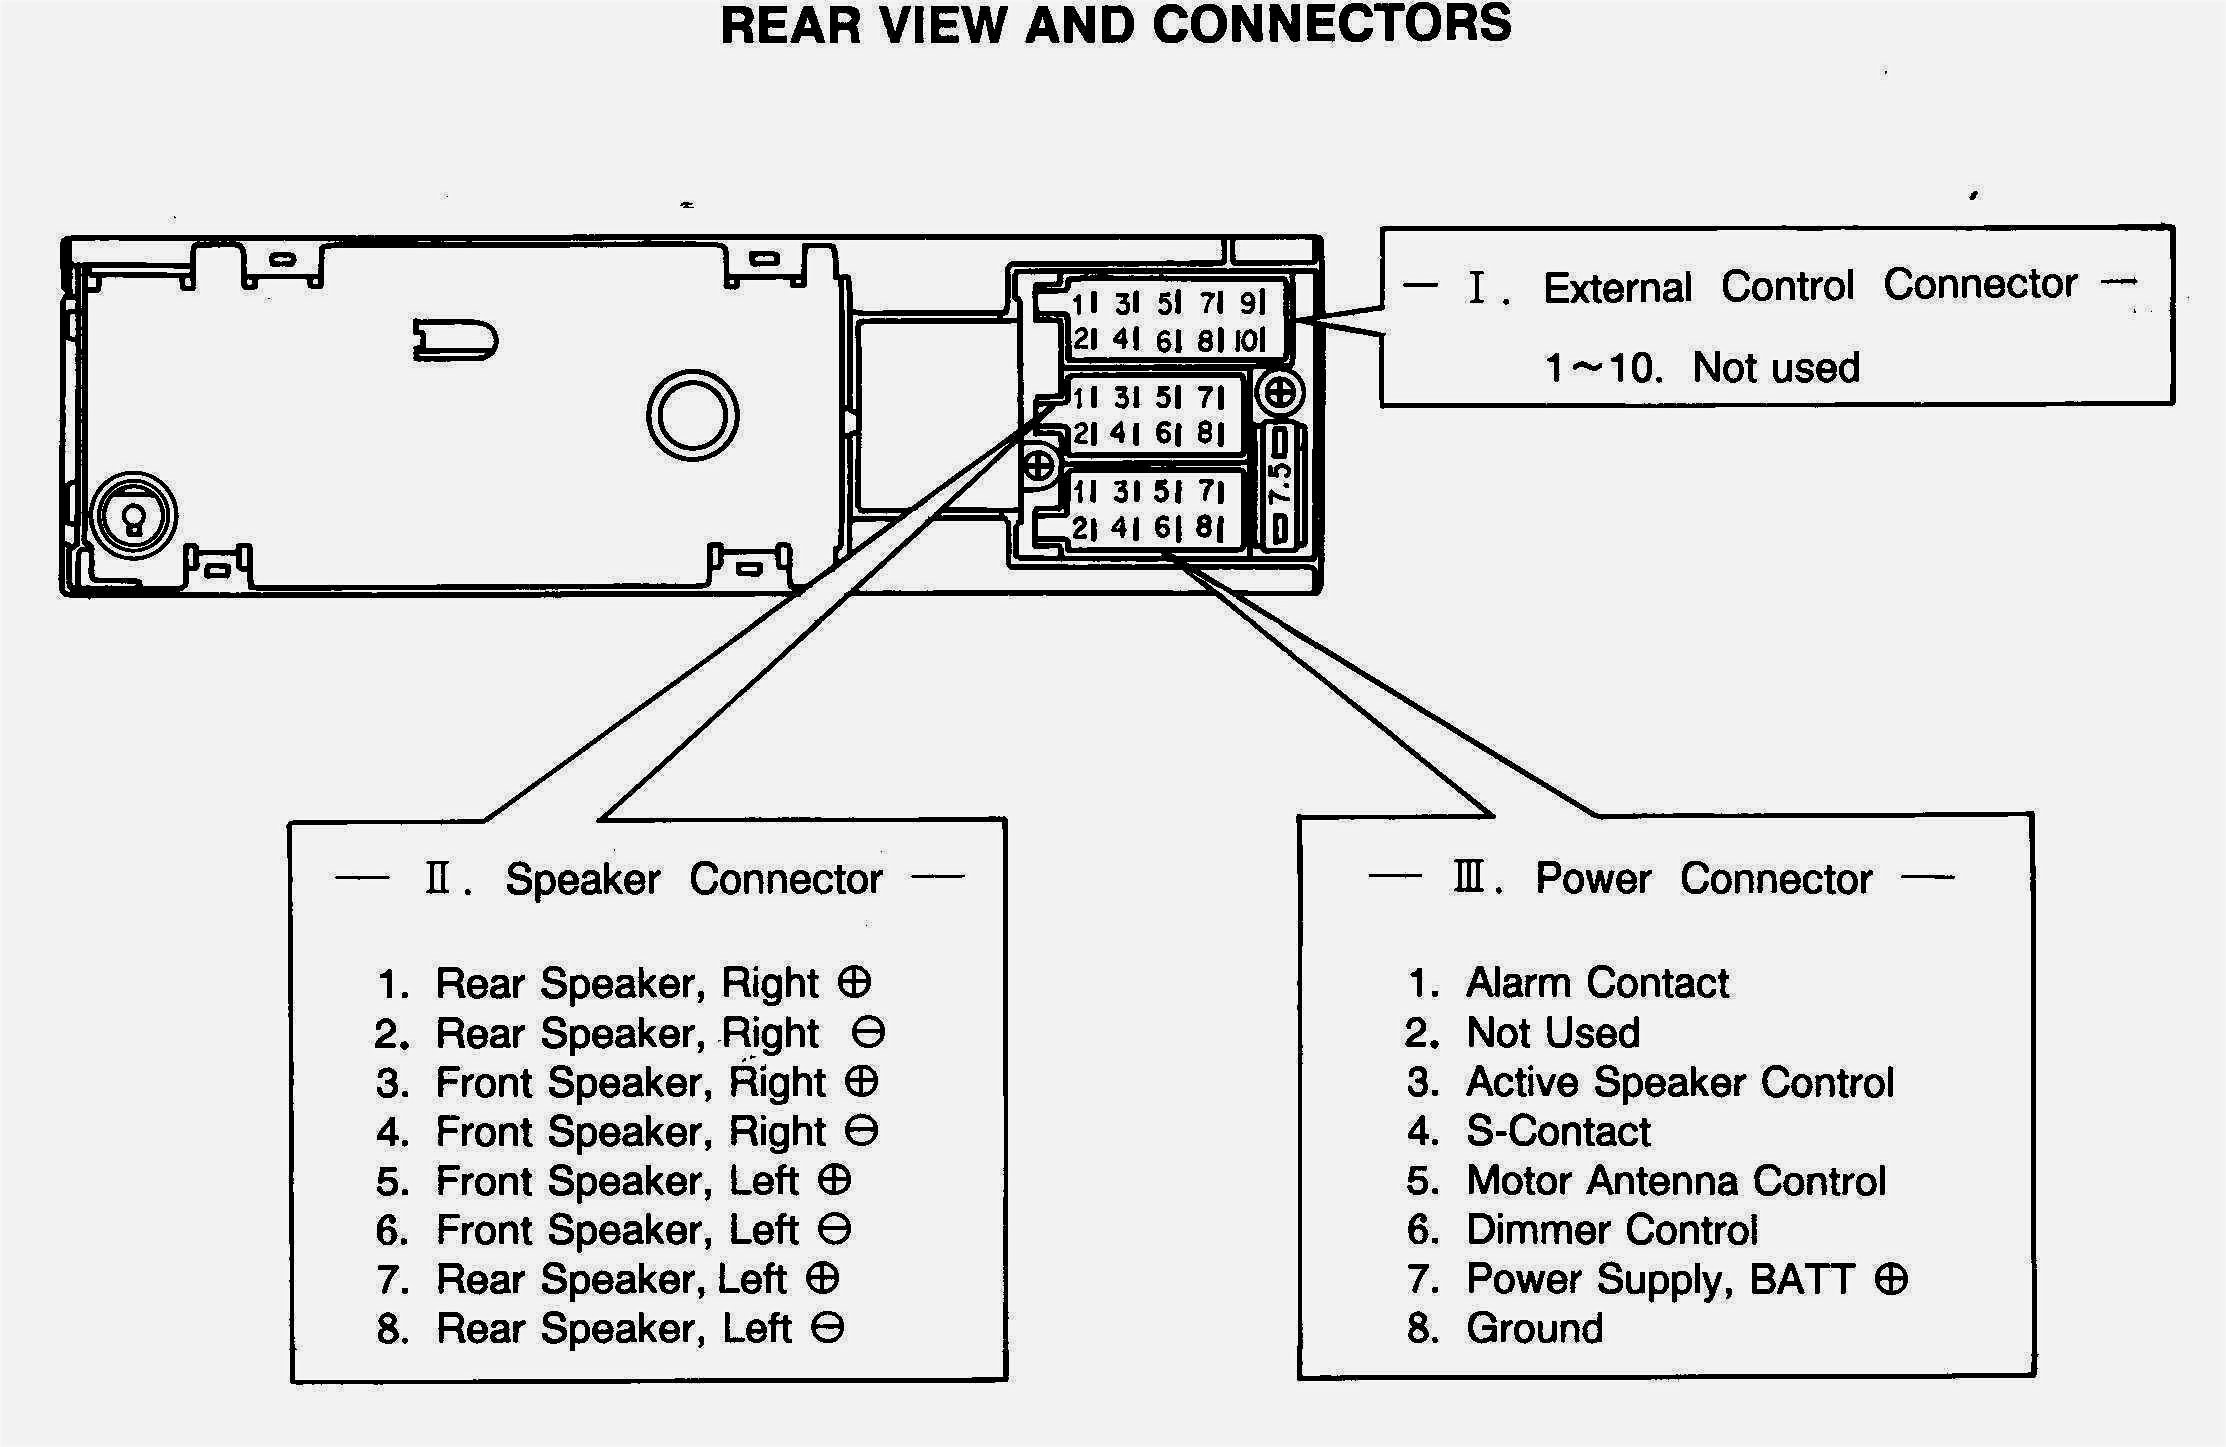 Sony Wiring Diagram Car Stereo sony Radio Wiring Diagram Autoctono Me for Roc Grp Of Sony Wiring Diagram Car Stereo